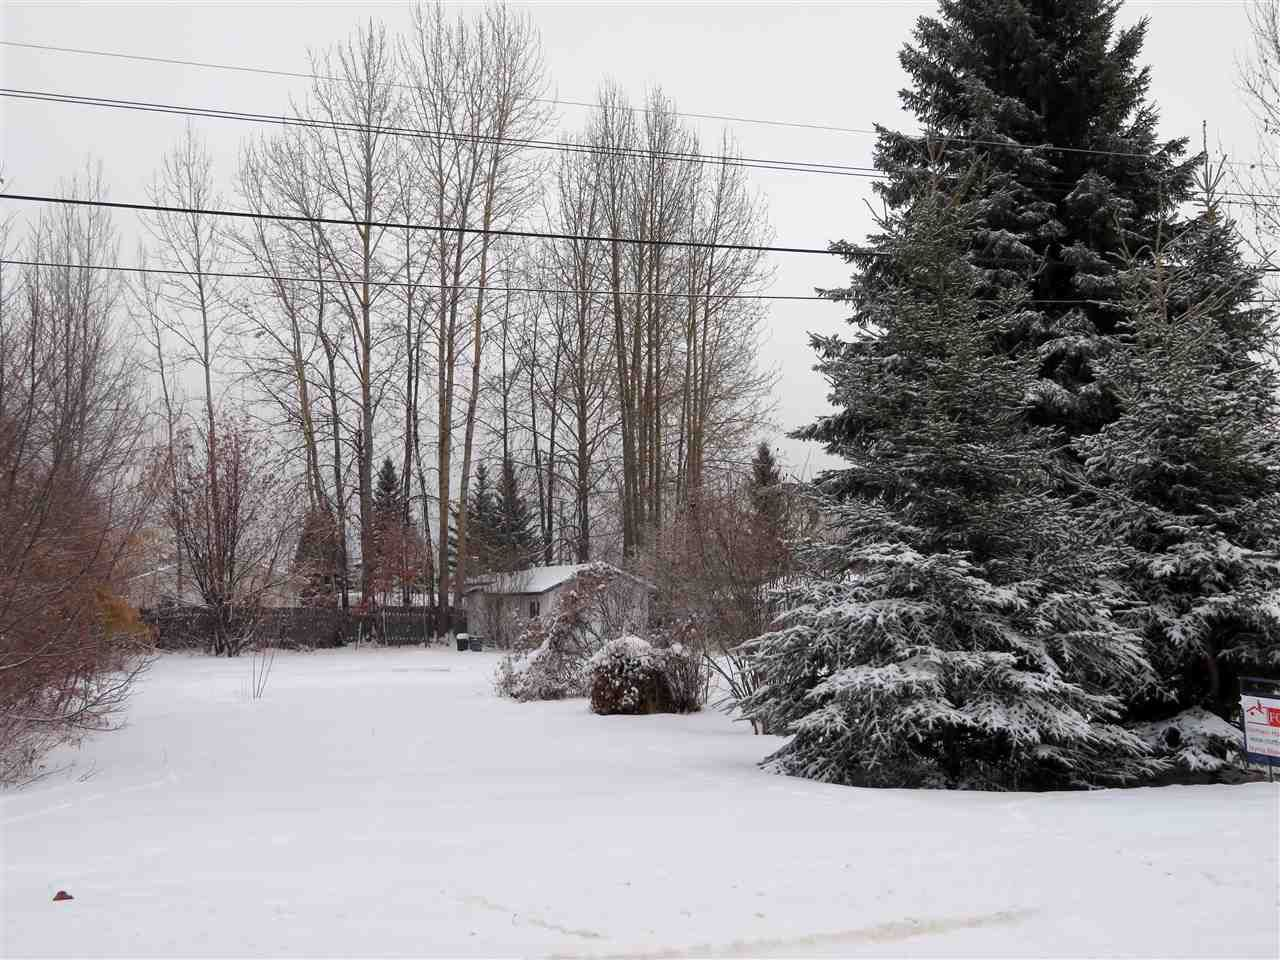 Main Photo: 5240 43 Street in Fort Nelson: Fort Nelson -Town Land for sale (Fort Nelson (Zone 64))  : MLS®# R2295766